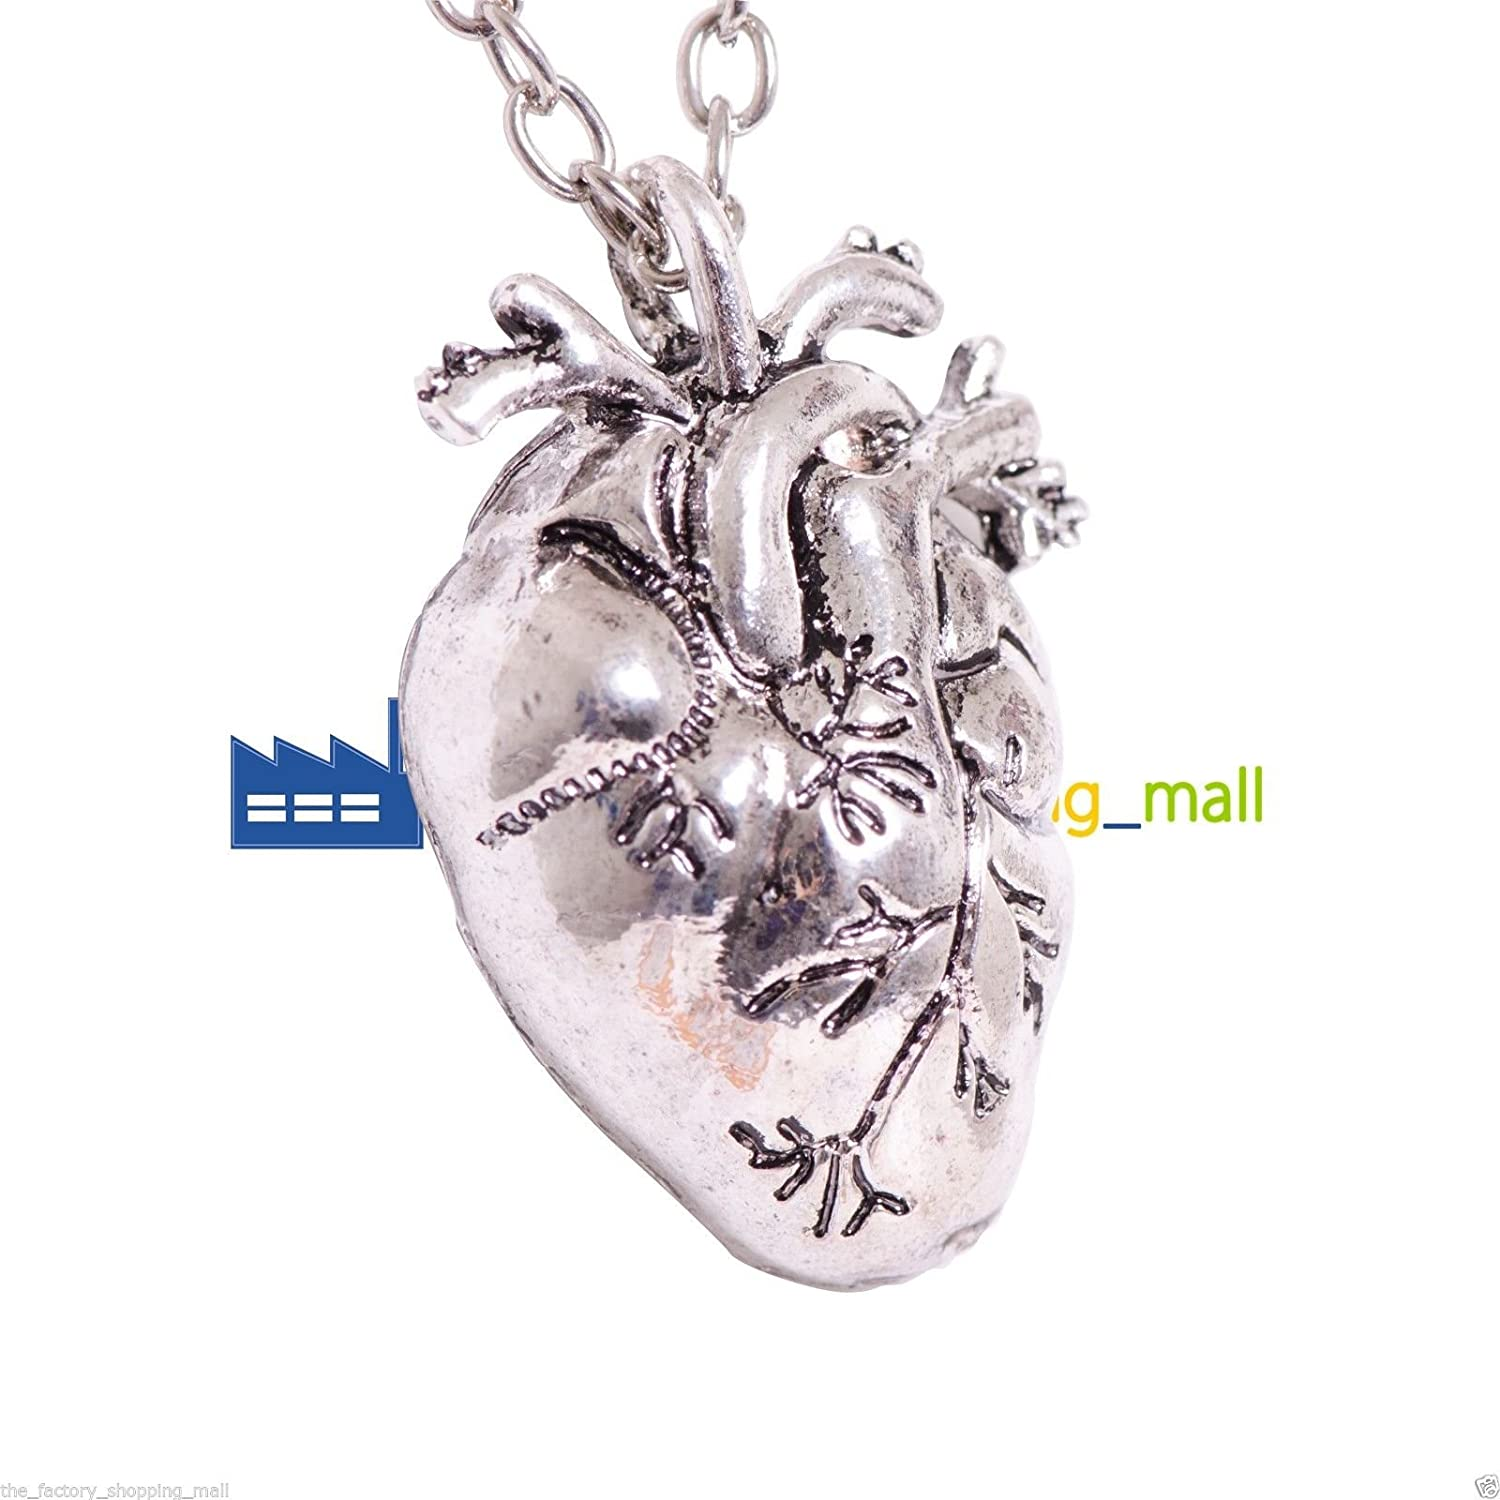 Steampunk Human Heart Anatomical Human Heart Pendant